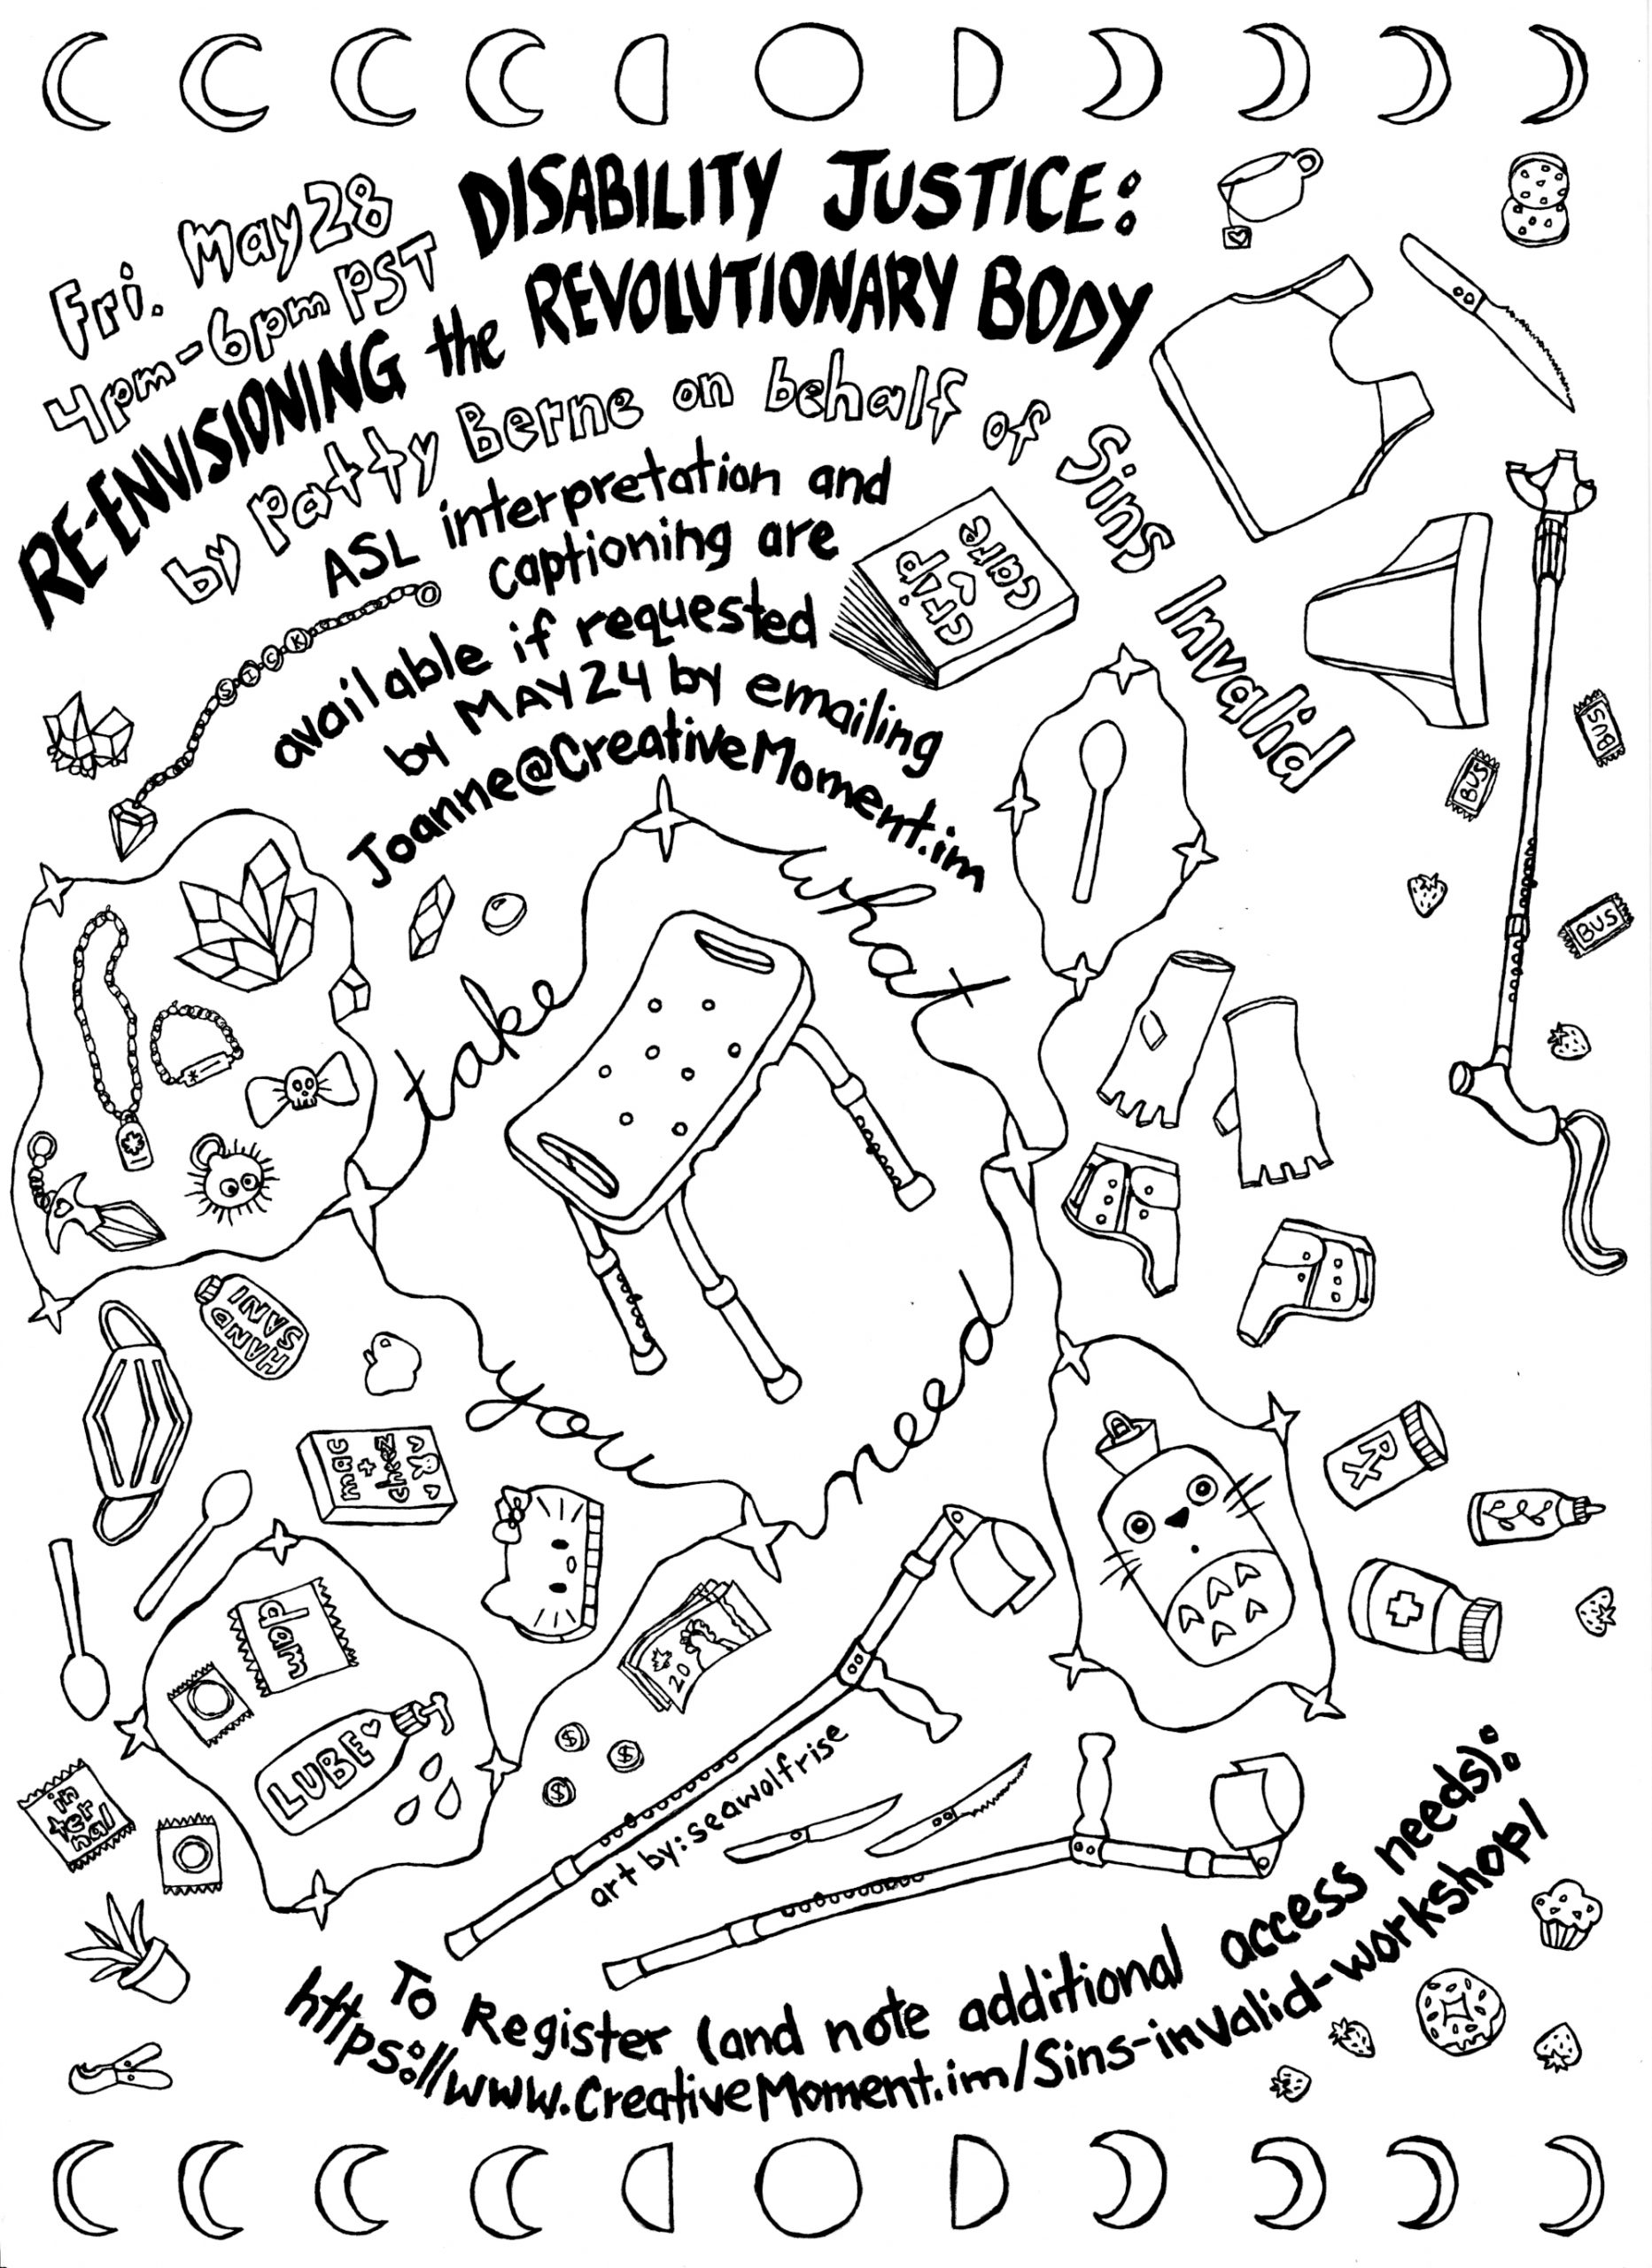 Colouring page version of poster by SeaWolfRise with drawings of a multitude of access tools and supports. Same image description as the poster above, except this version has black line drawings on a white background.